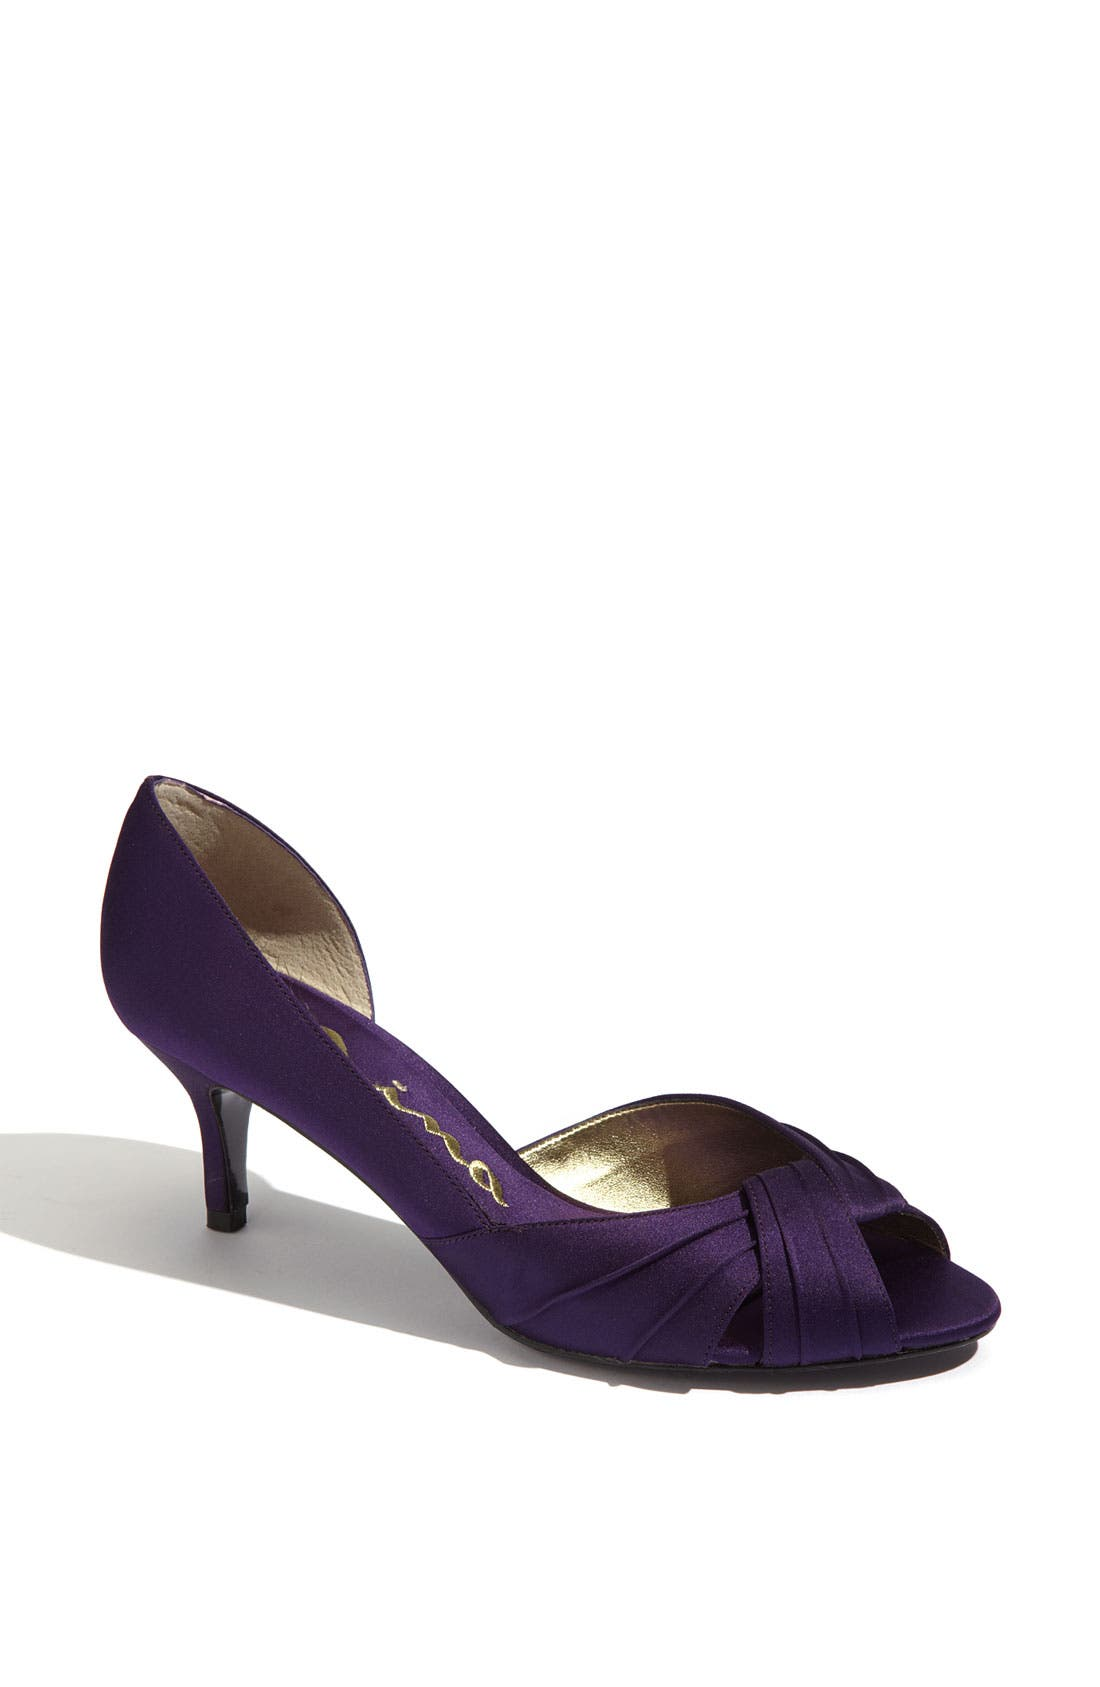 Alternate Image 1 Selected - Nina 'Culver' d'Orsay Pump (Women)